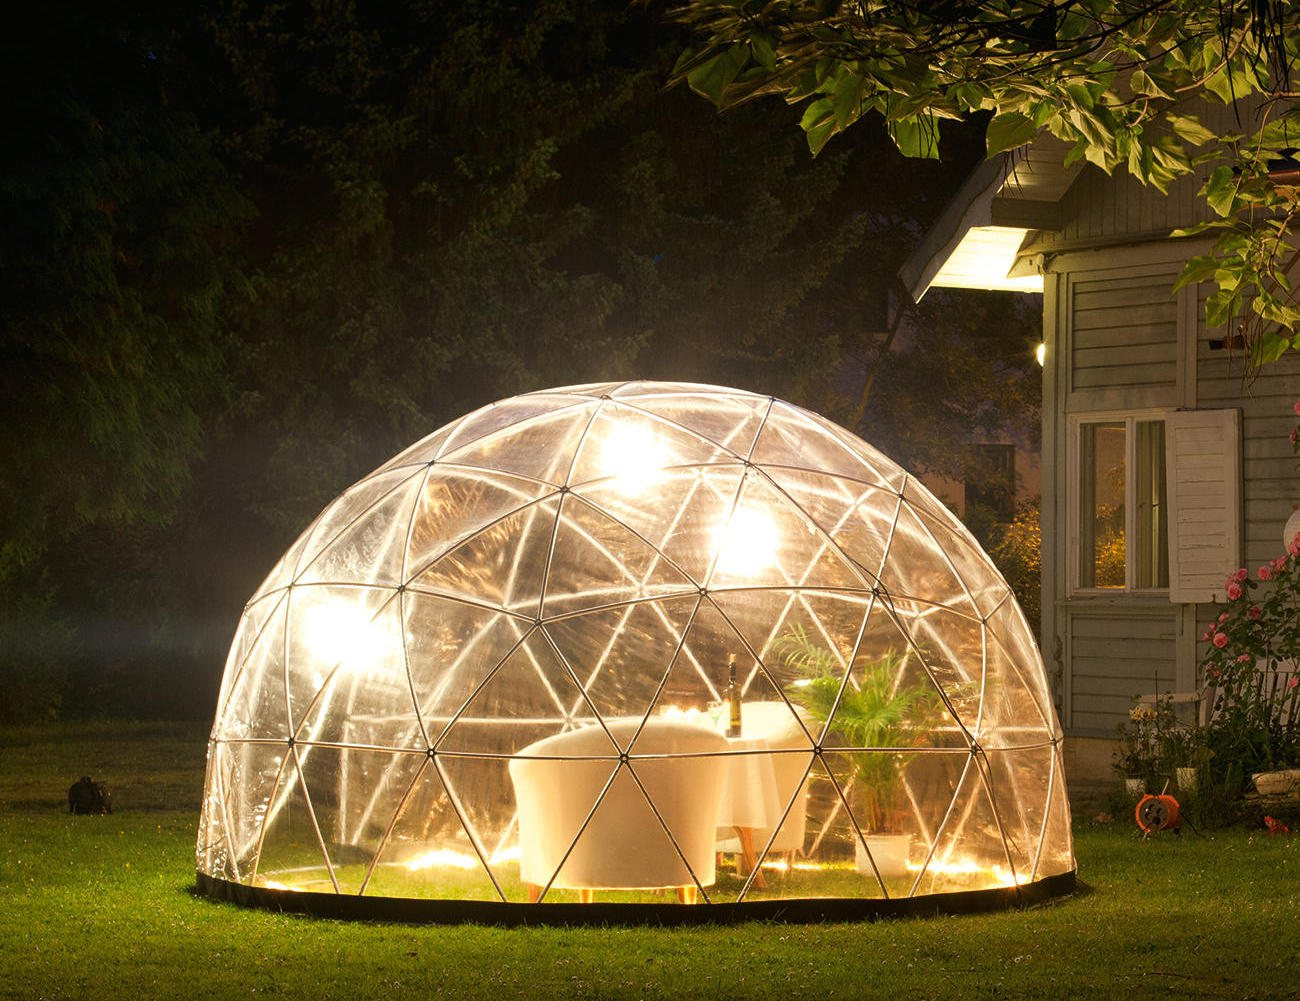 Garden Igloo – Outdoor Living Space For Your Garden